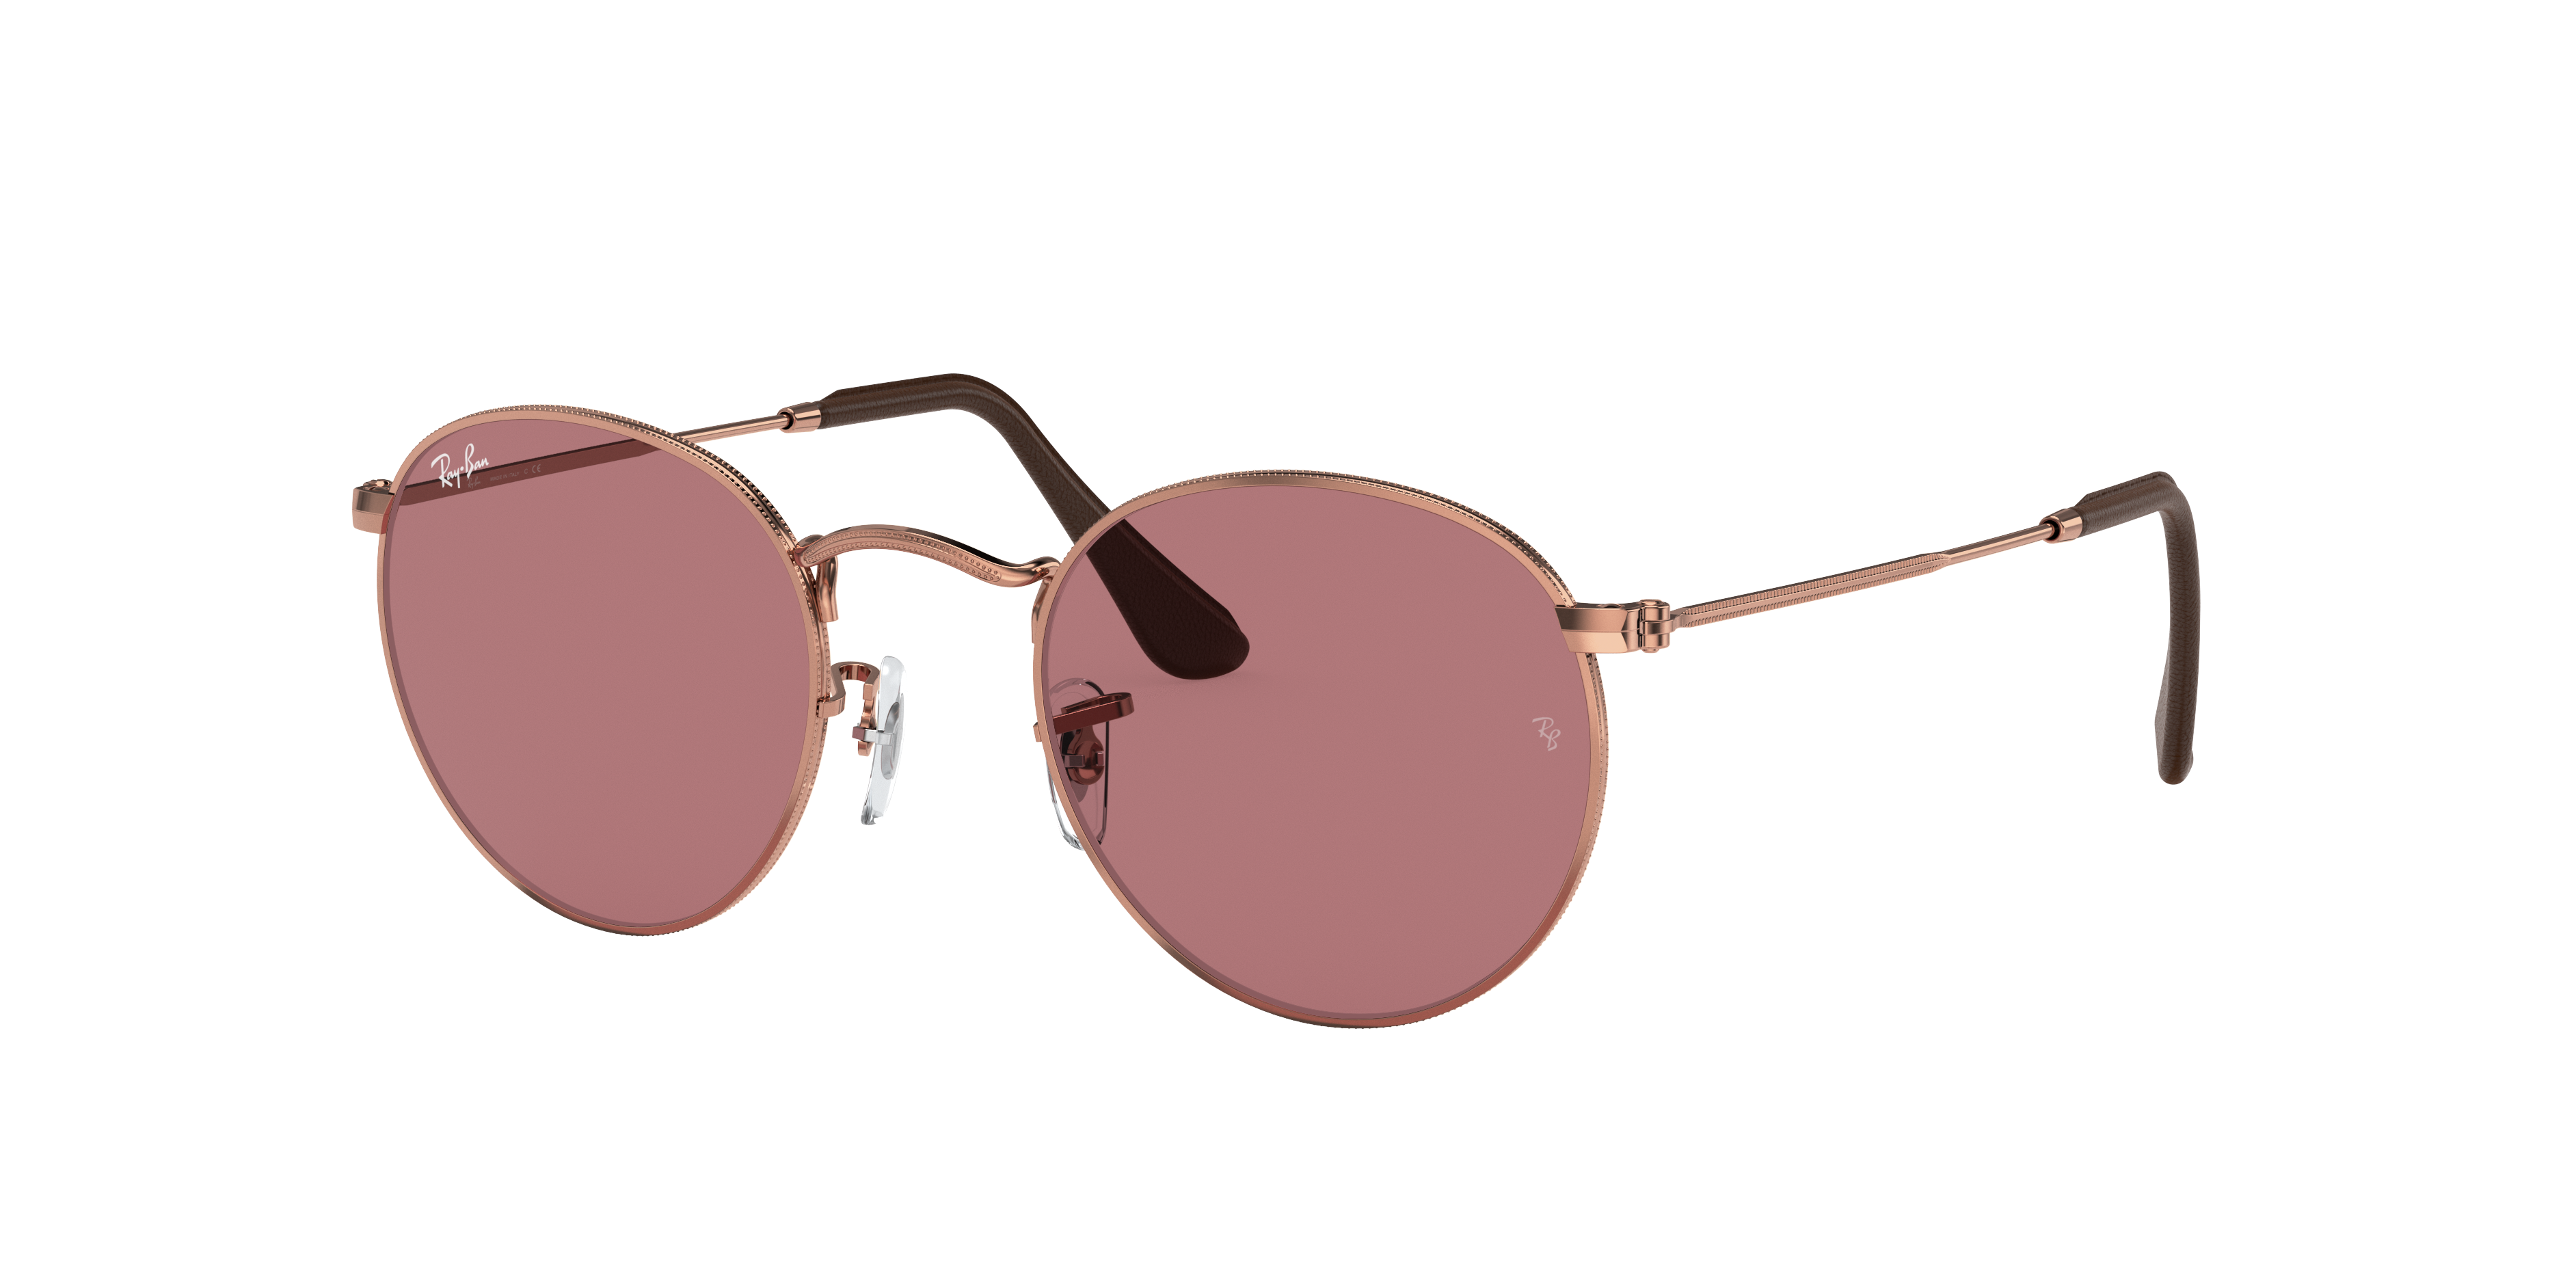 Ray-Ban Round Metal @collection Bronze-Copper, Violet Lenses - RB3447